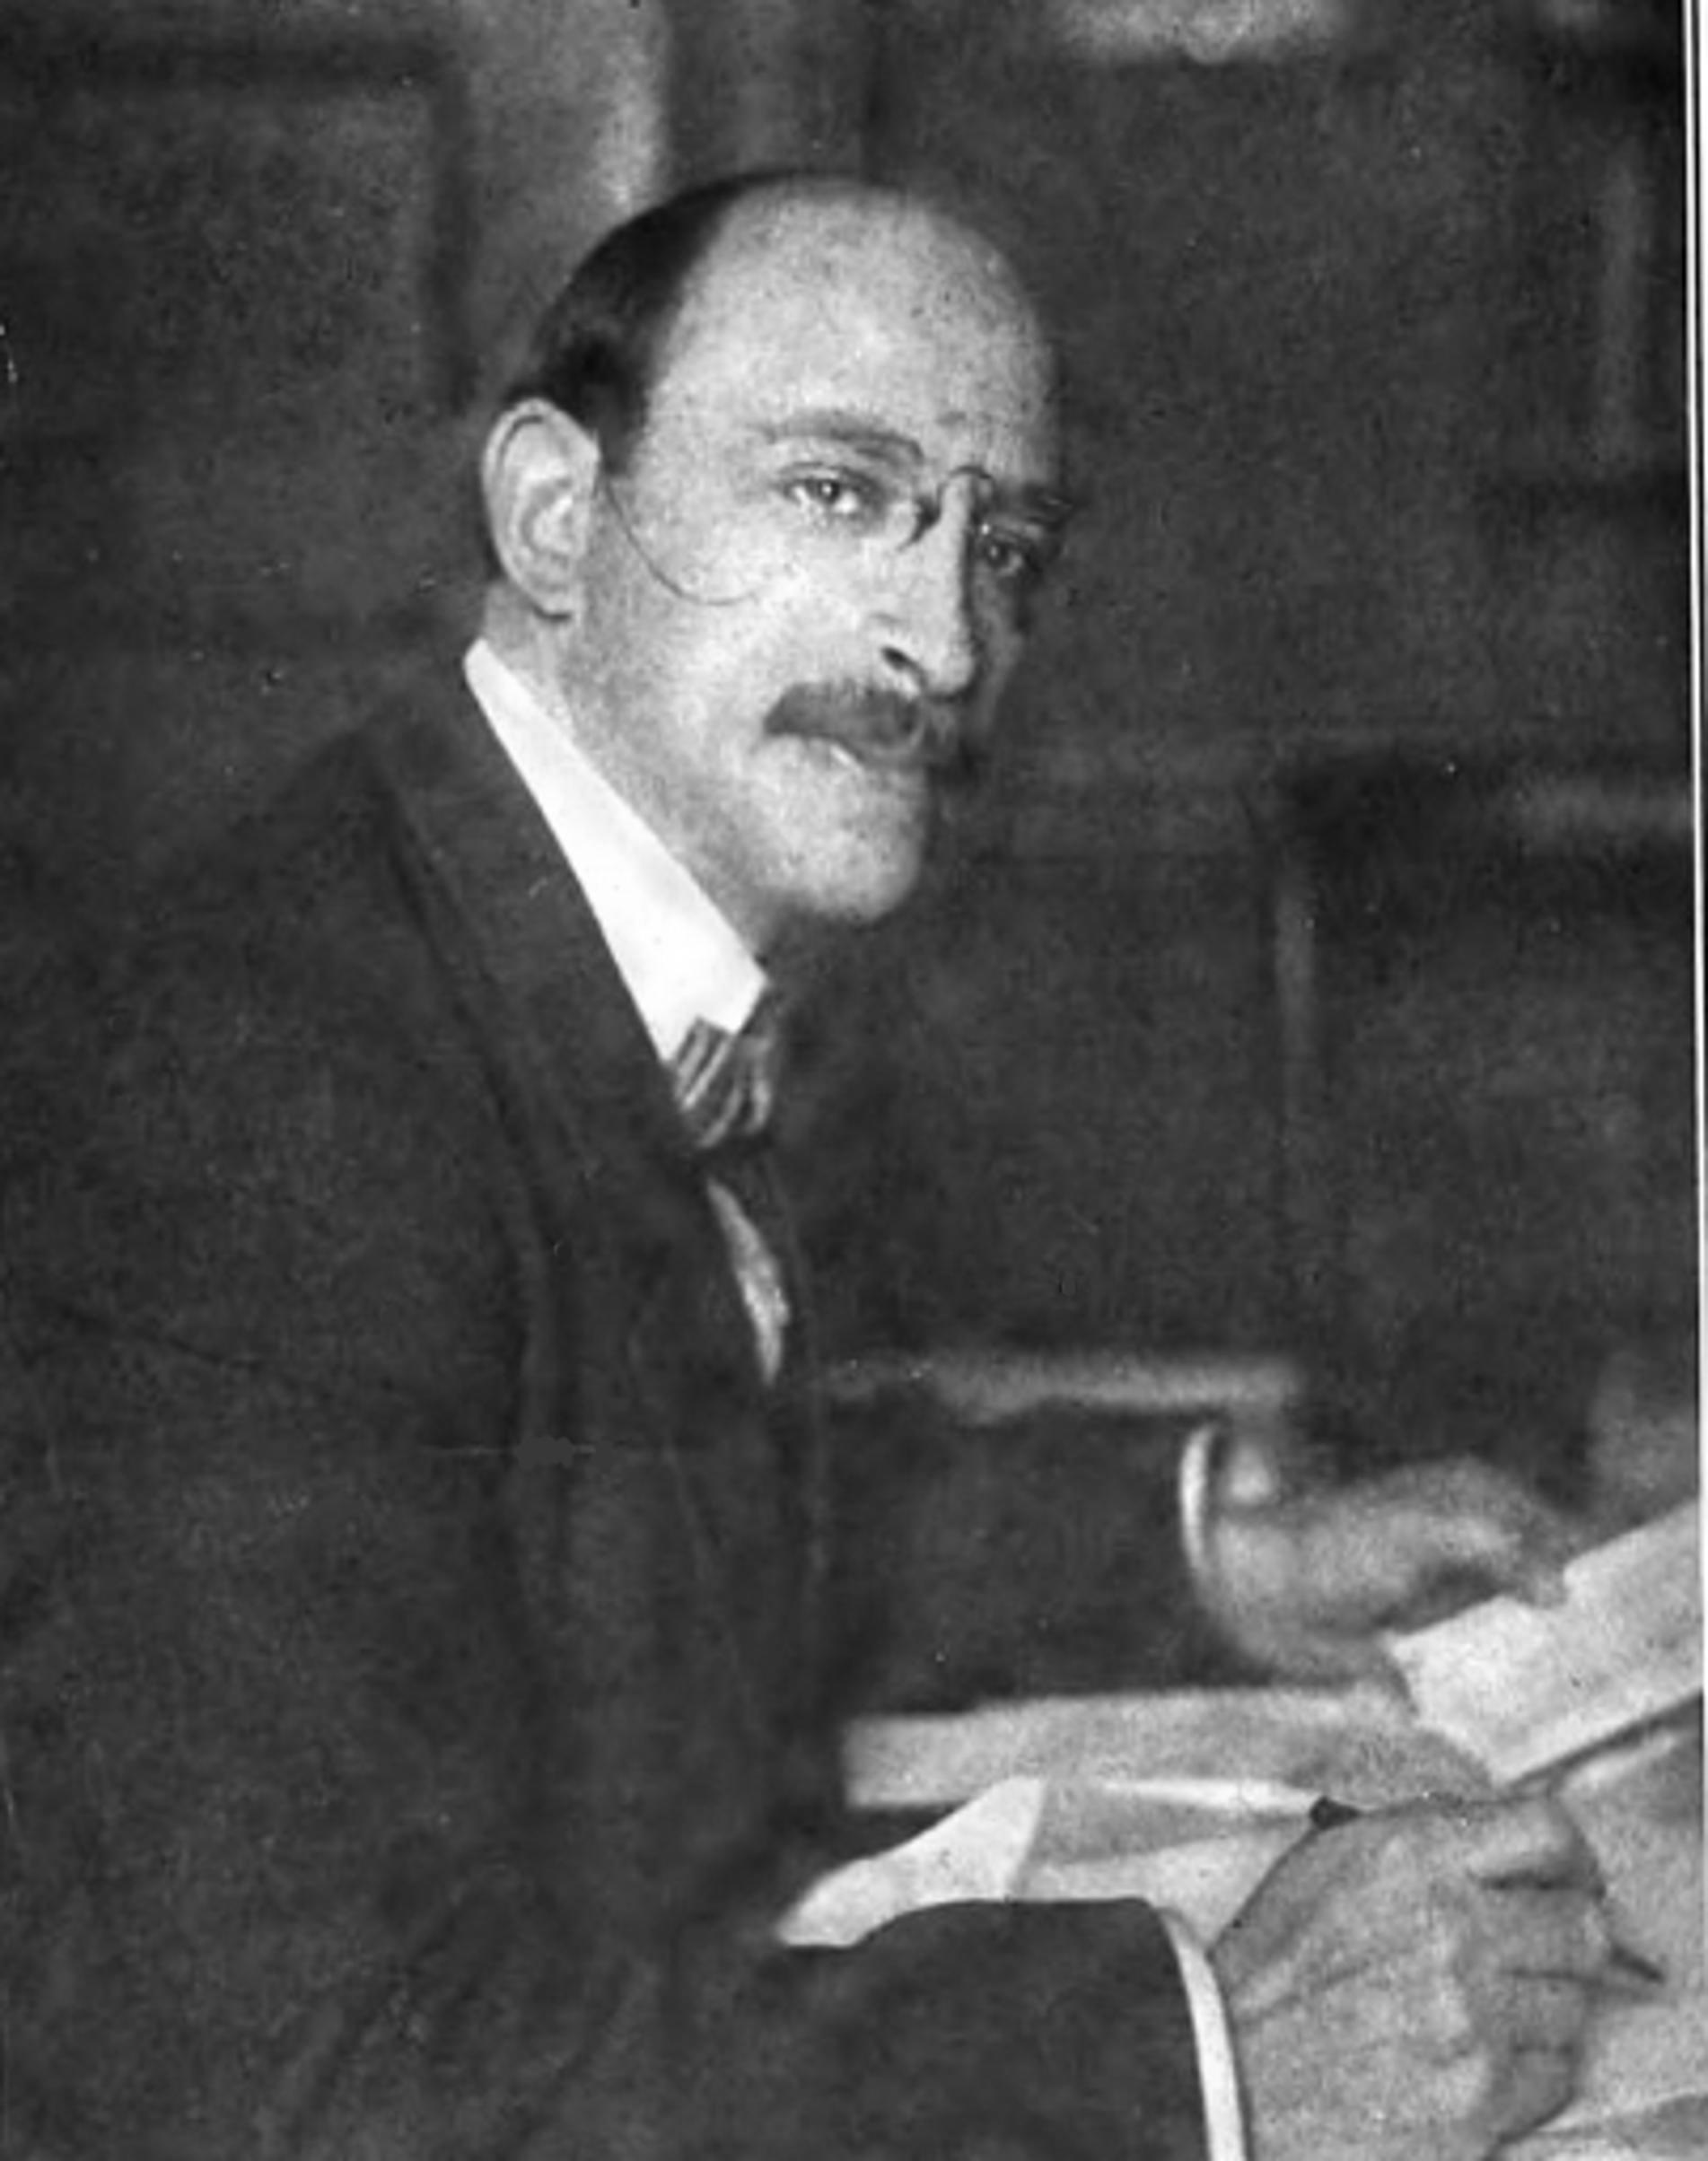 Alexander Berkman, September 1912